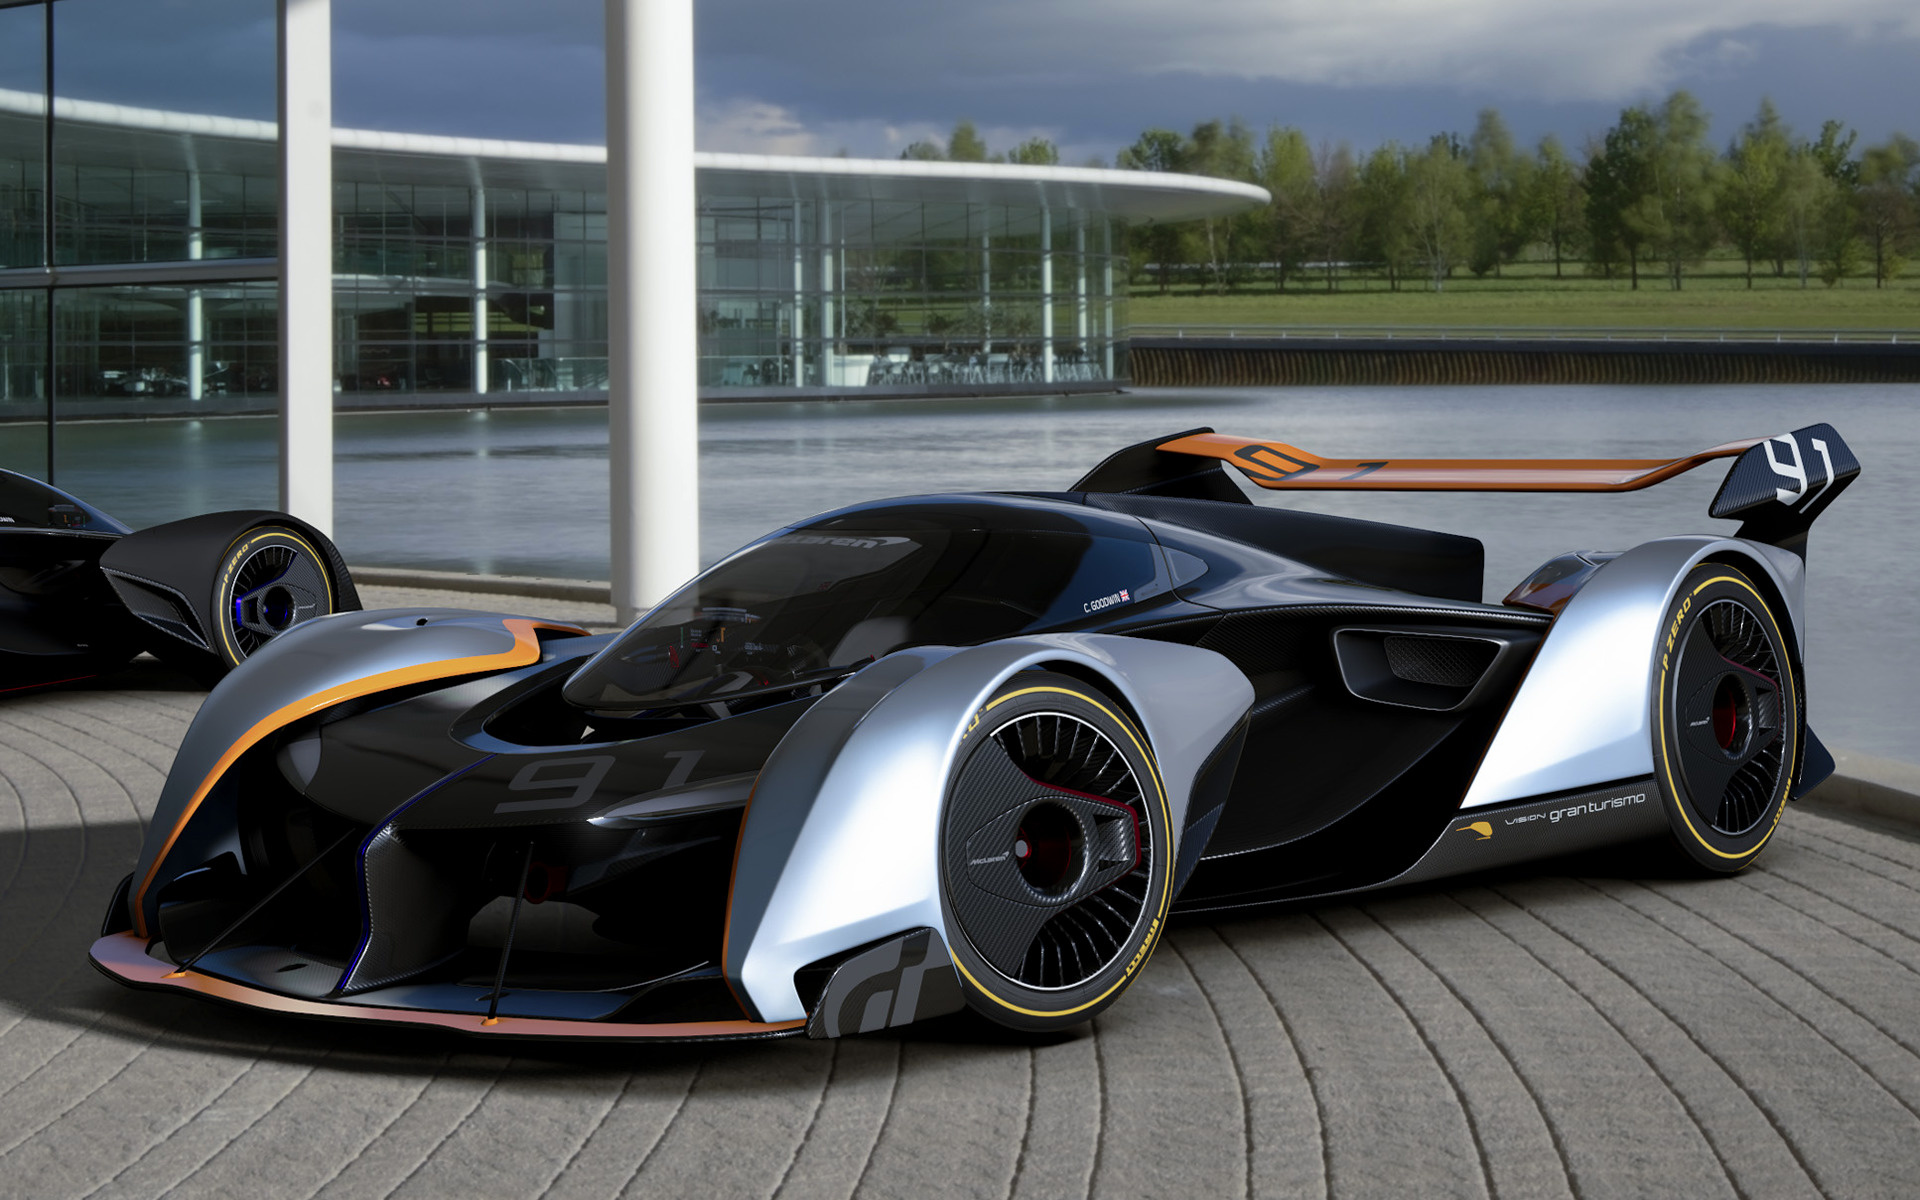 2017 McLaren Ultimate Vision Gran Turismo - Wallpapers and ...